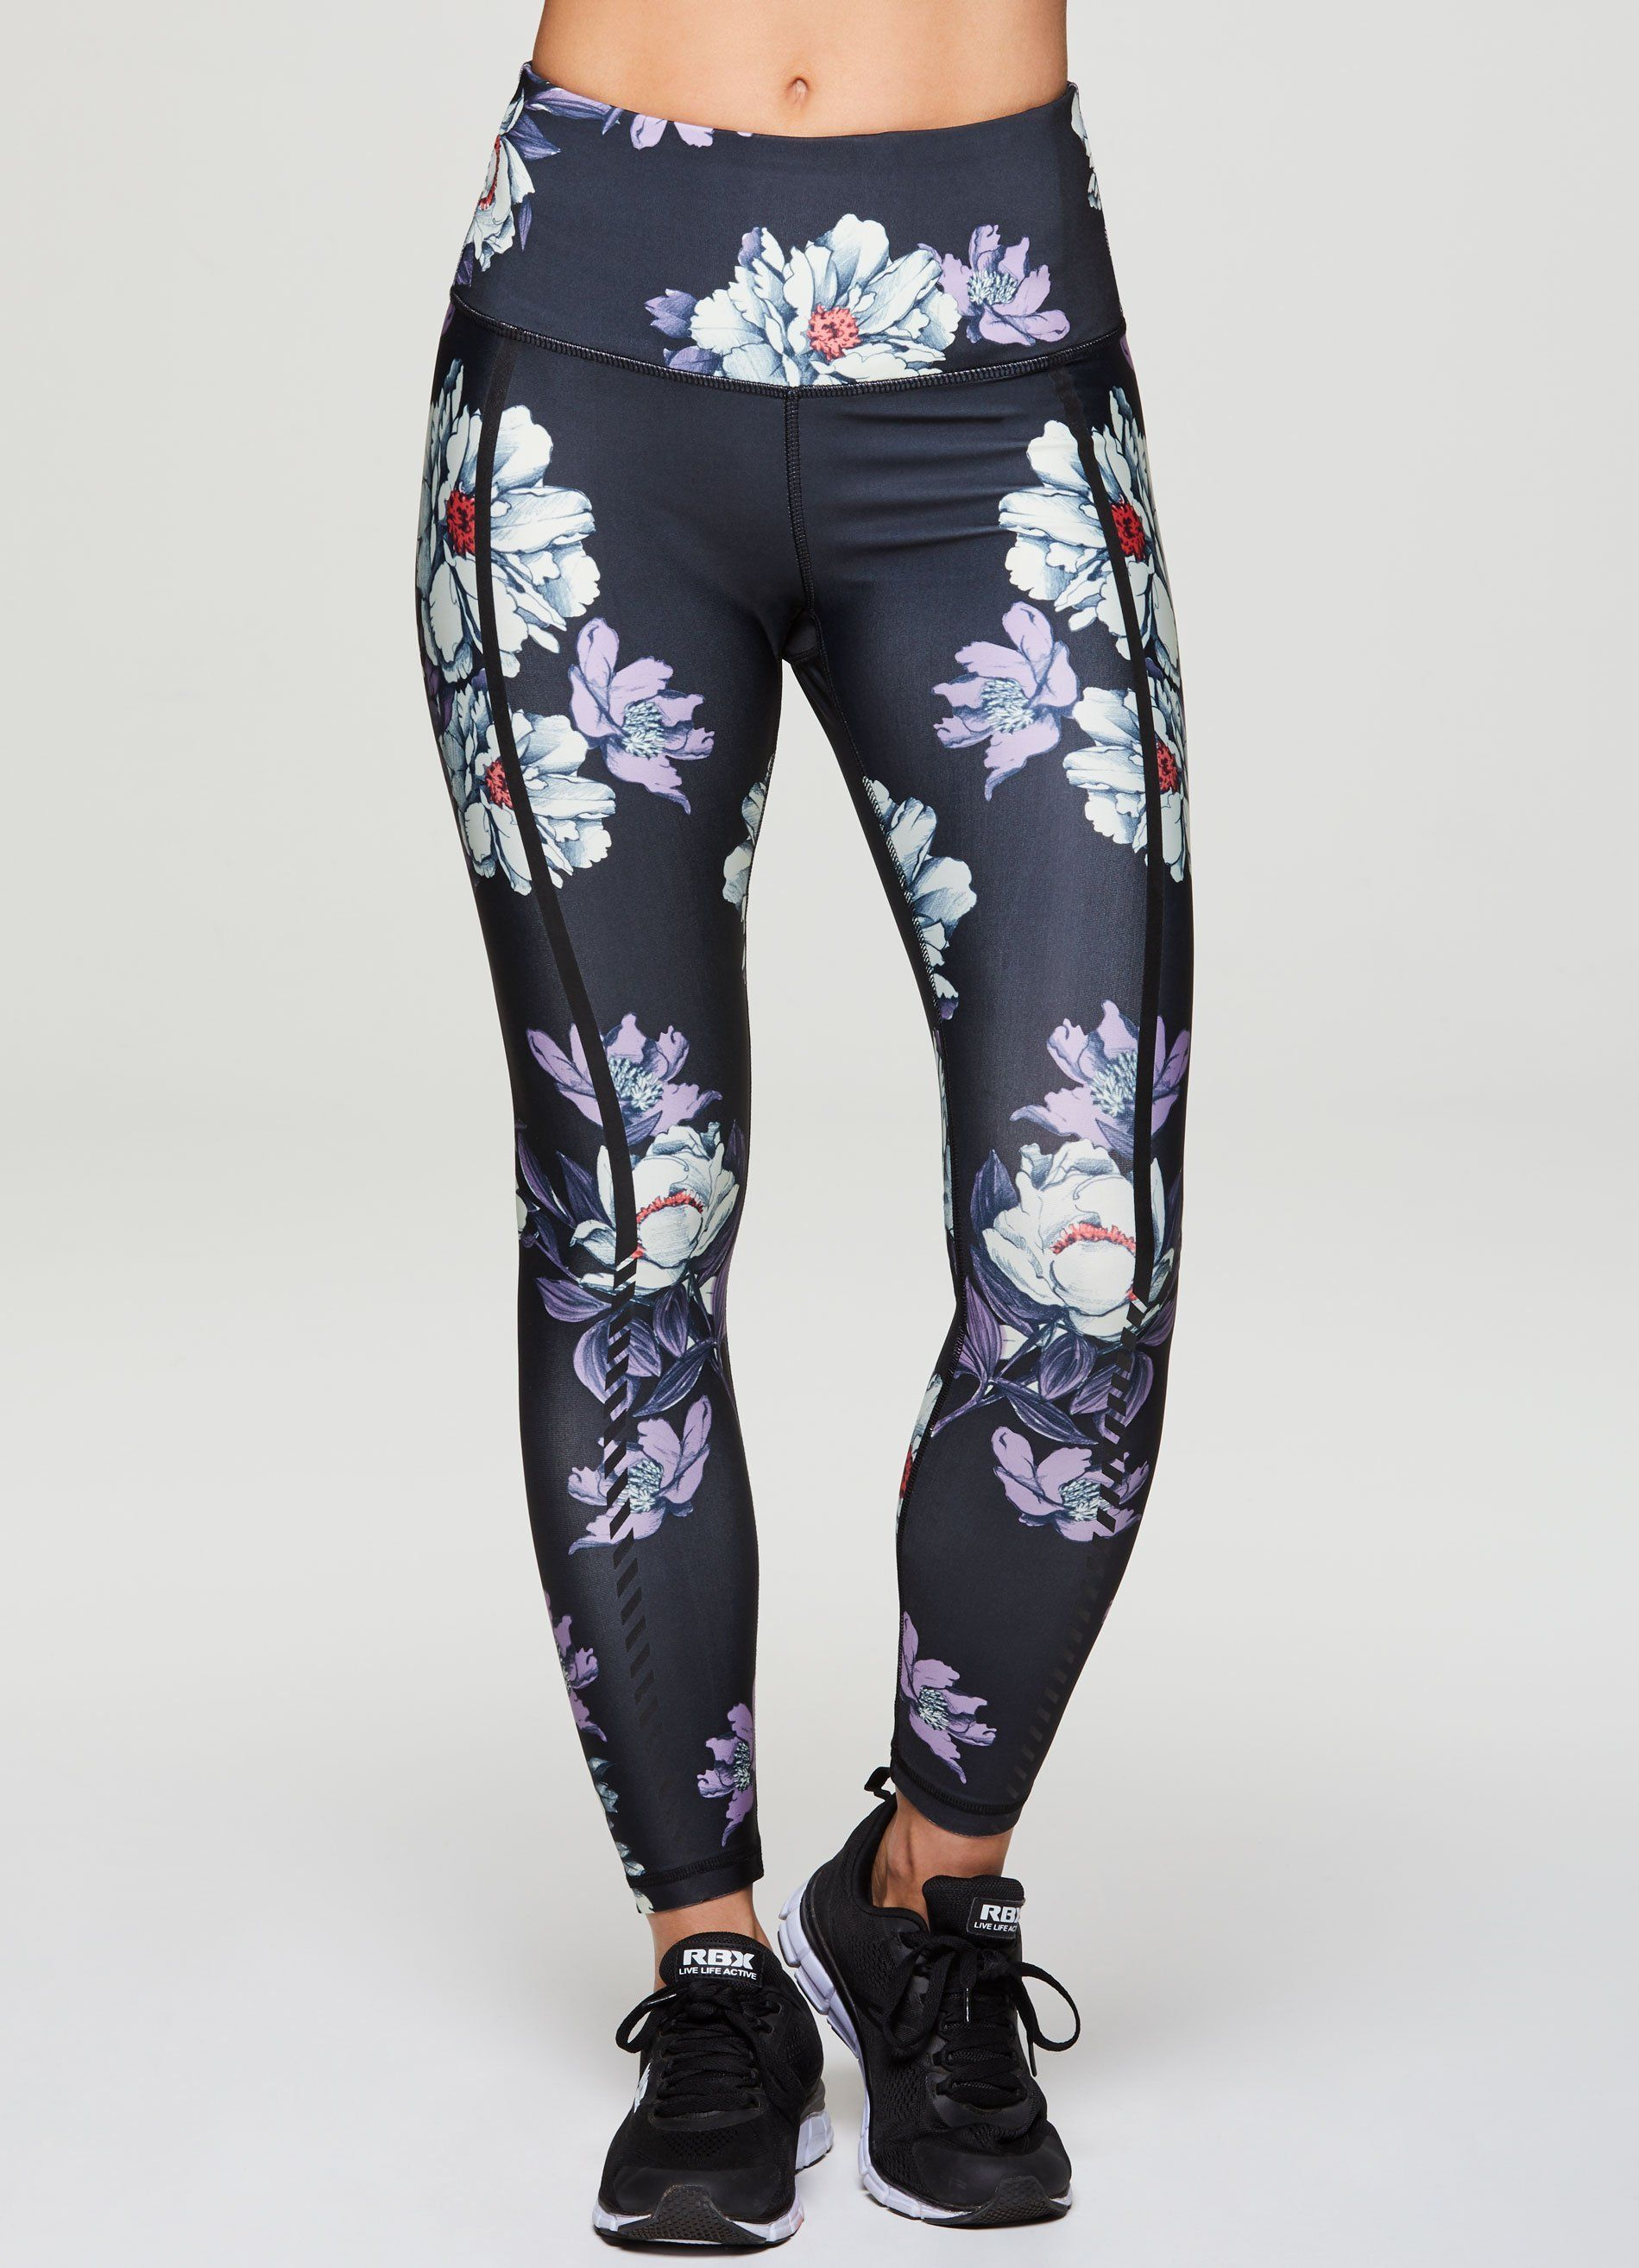 00643543c073a Energize your practice in these feel good floral print leggings. Silicon  detail down each side